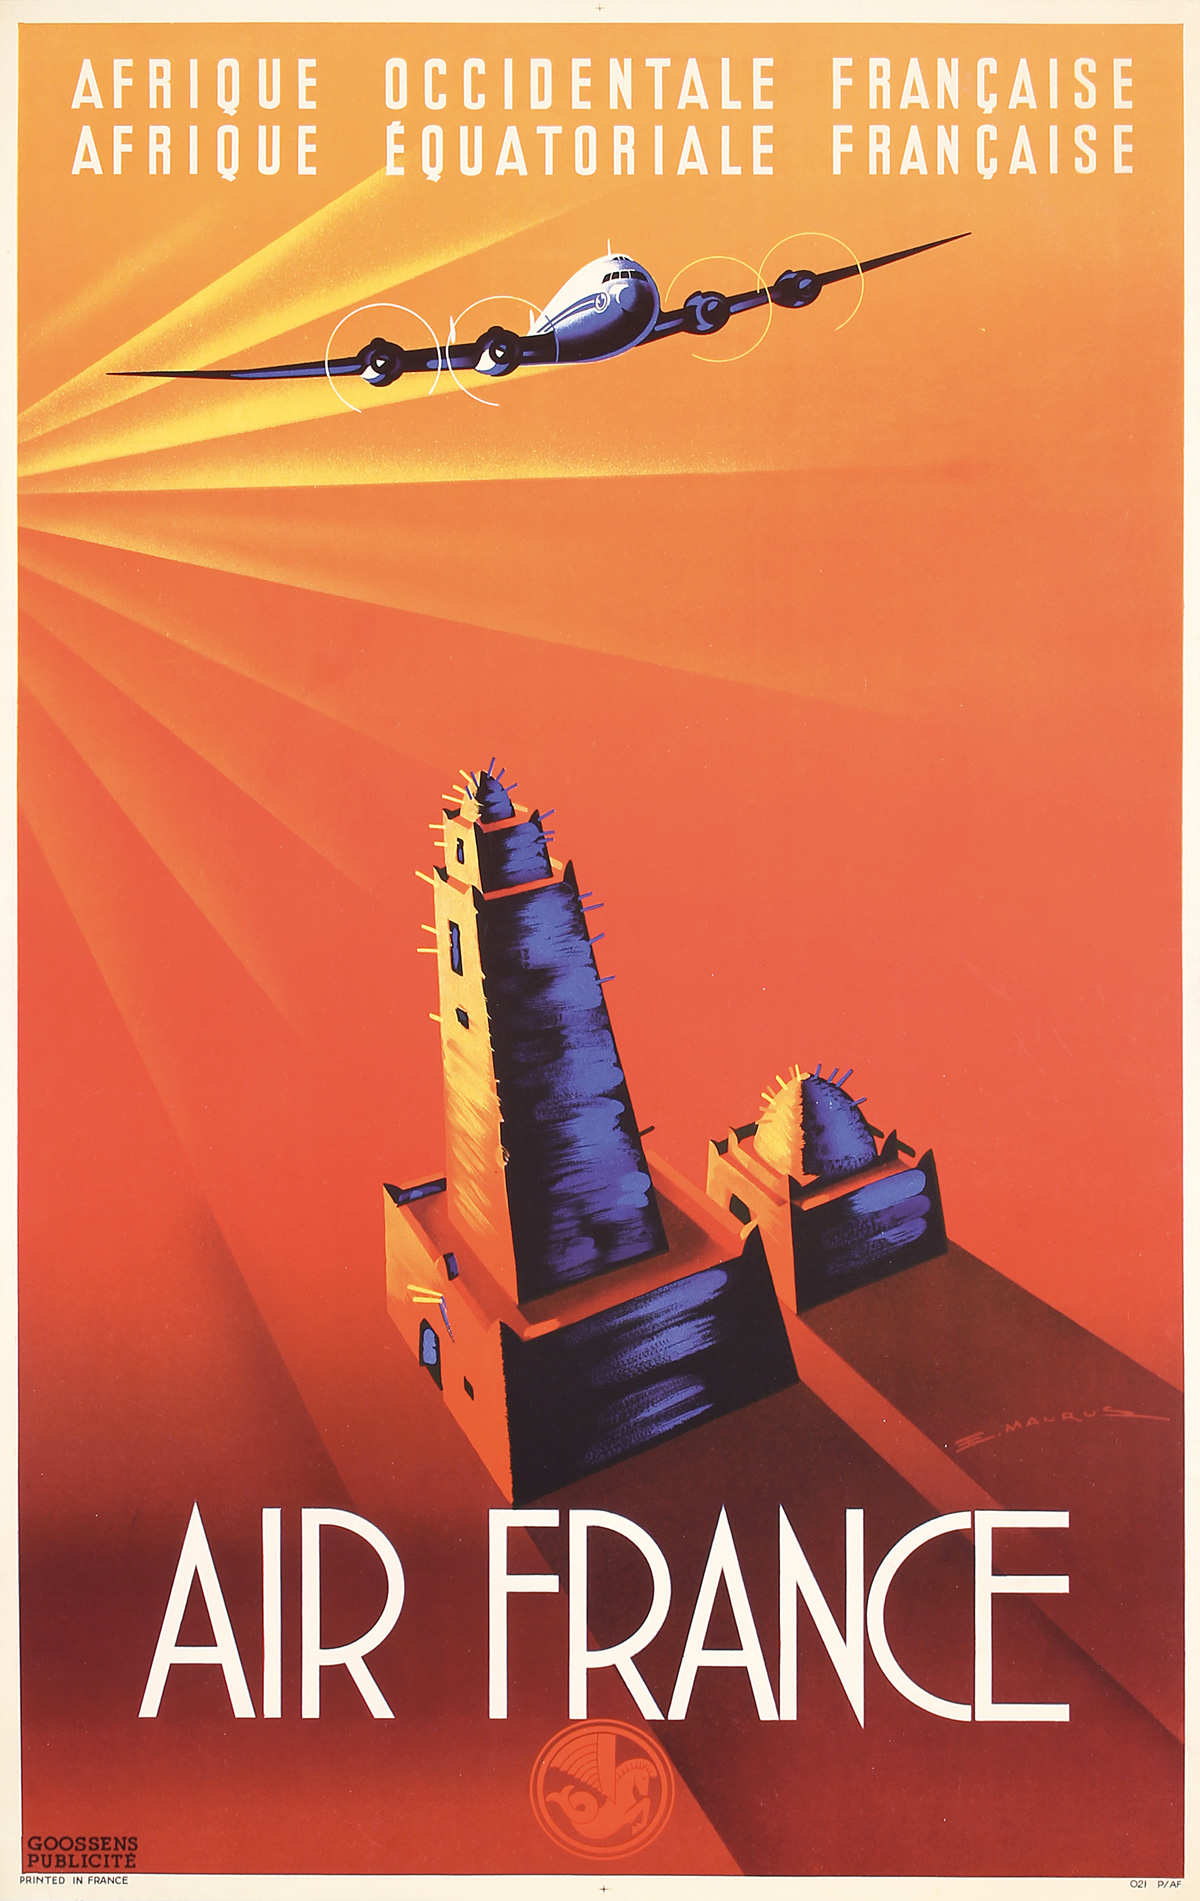 Affiche Air France Afrique Occidentale Afrique Equatoriale Guerra